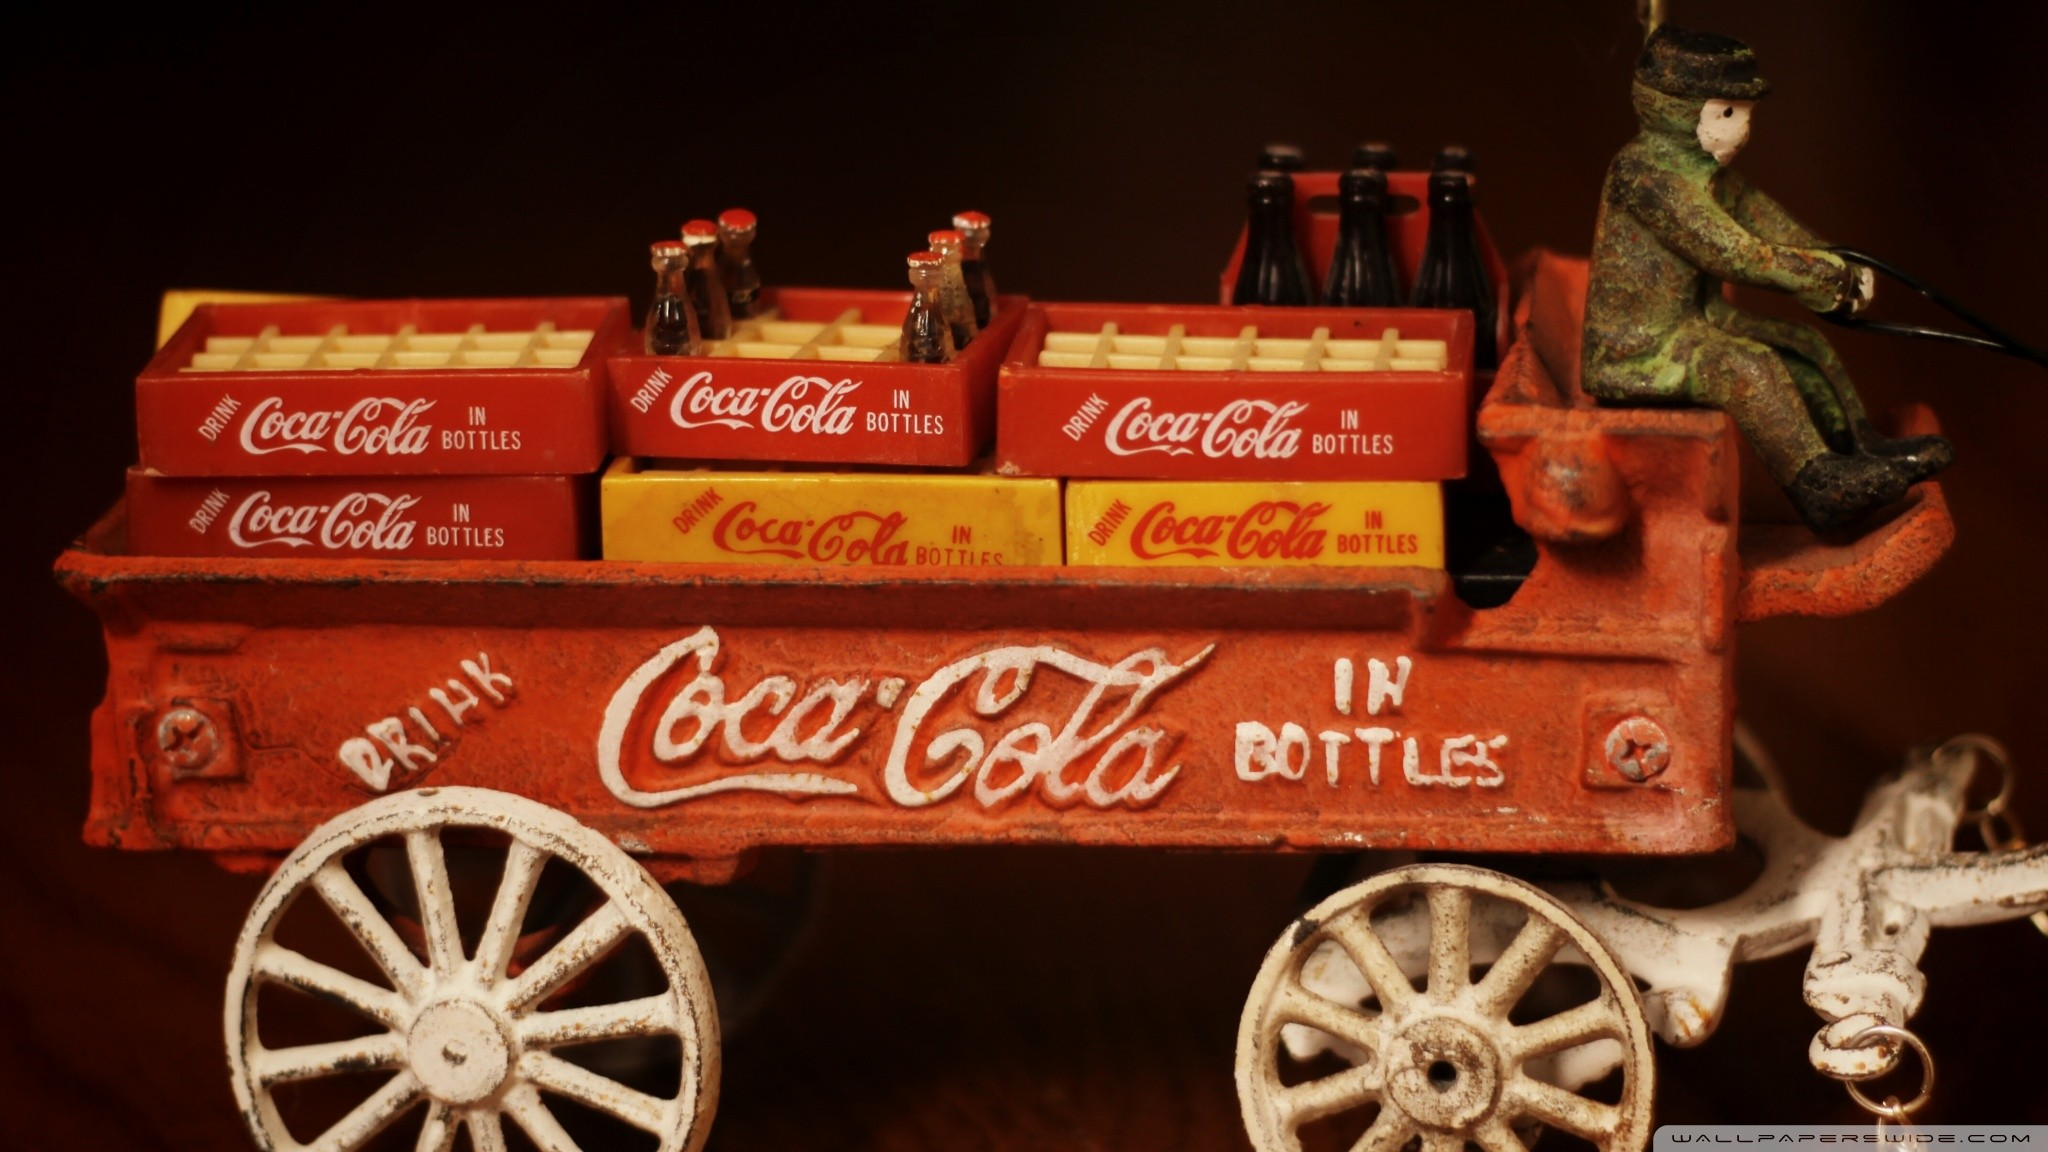 Coca cola wallpaper desktop 69 images - Vintage coke wallpaper ...